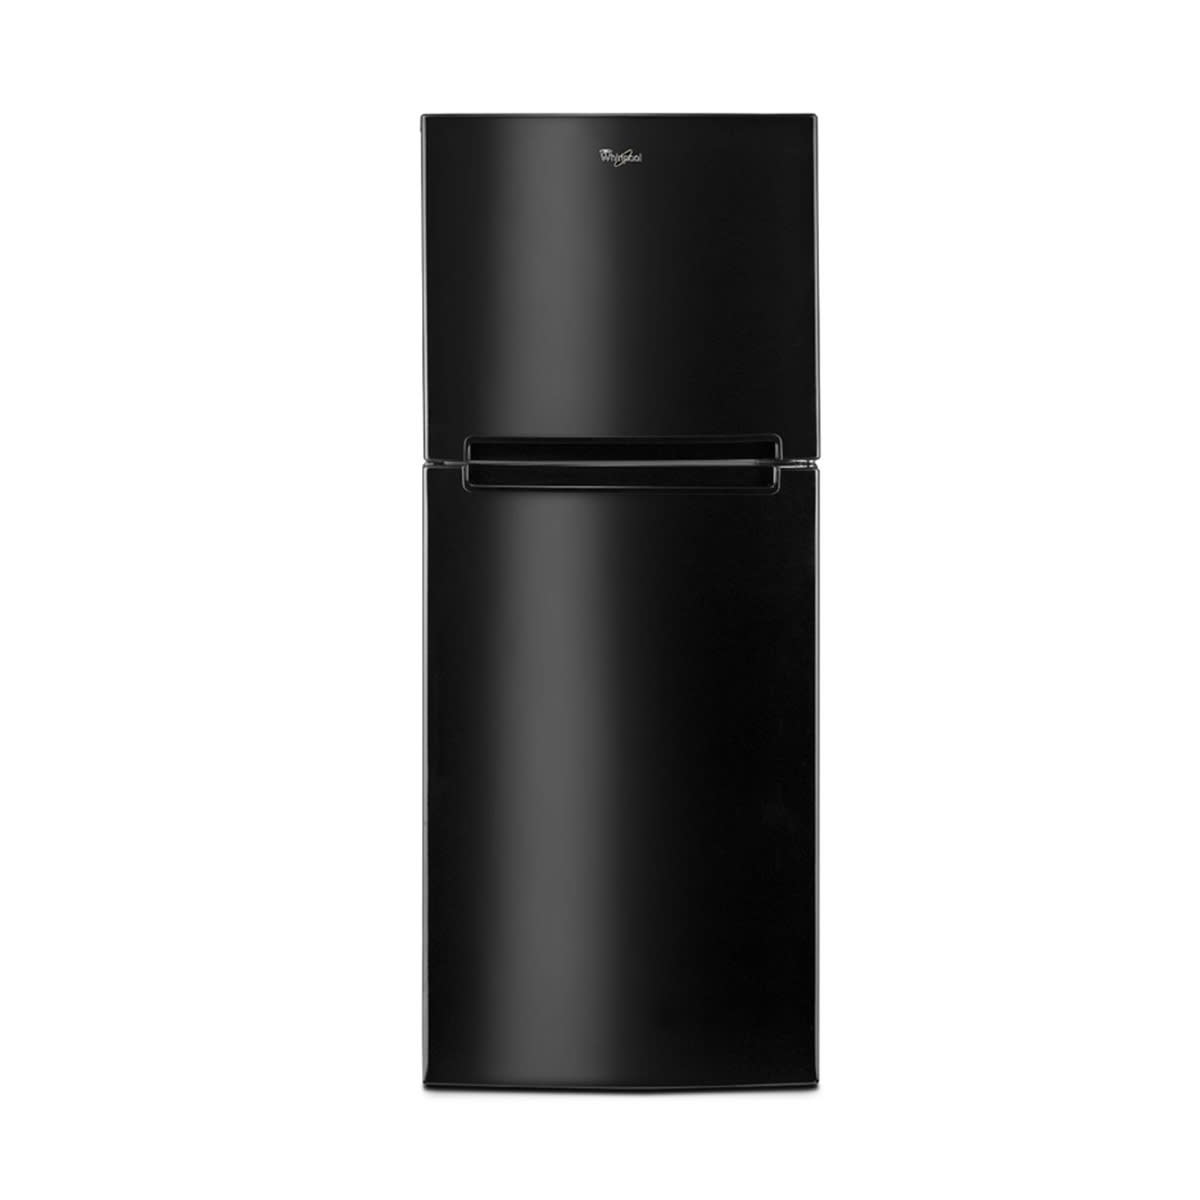 Apartment Refrigerator: 10 Small Refrigerators For $1,000 Or Less